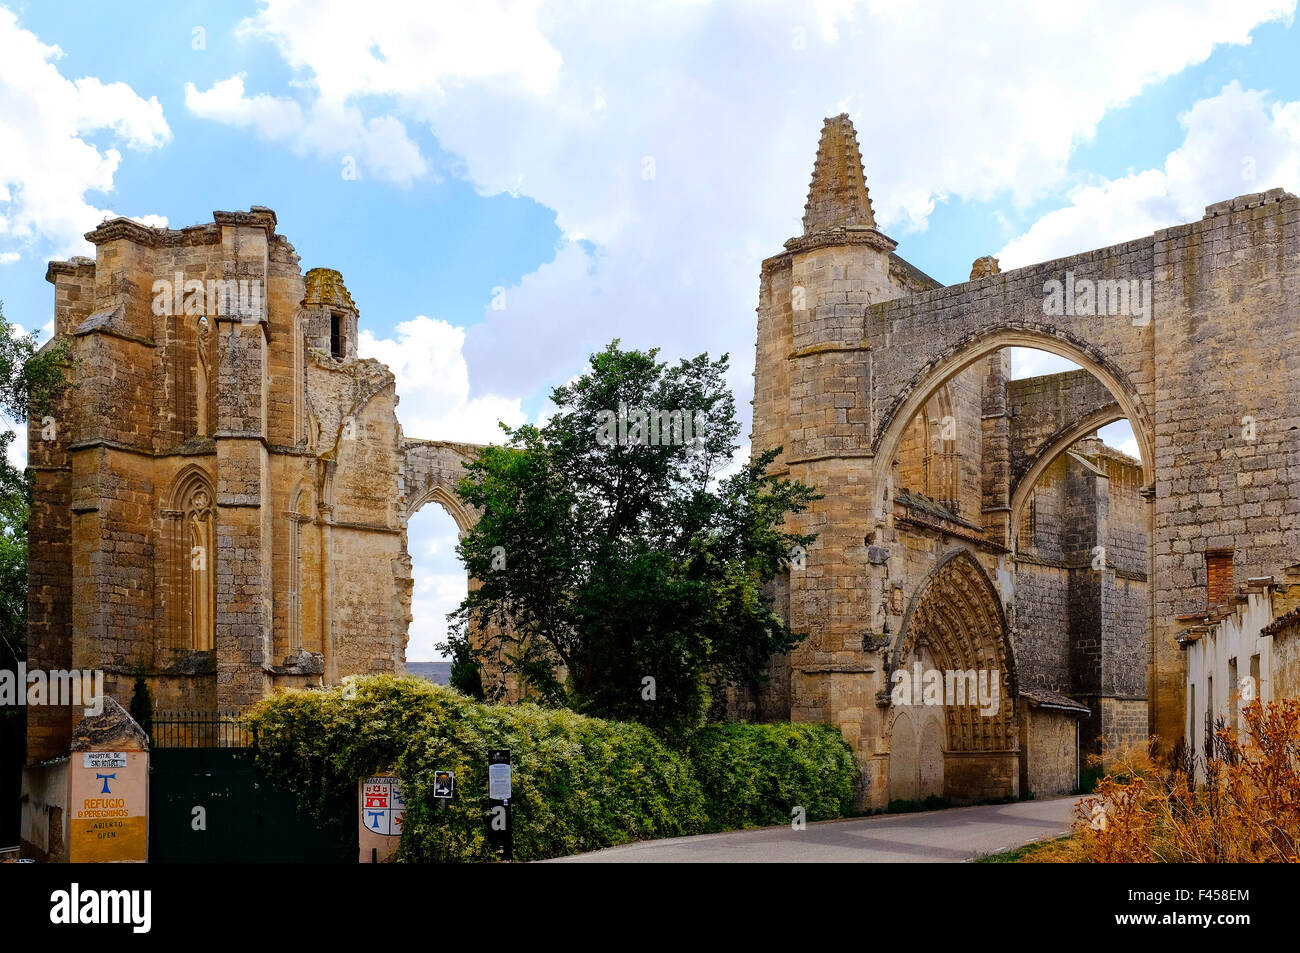 Ruins of the San Anton convent, Castrojeriz, Castile and León, Spain - Stock Image